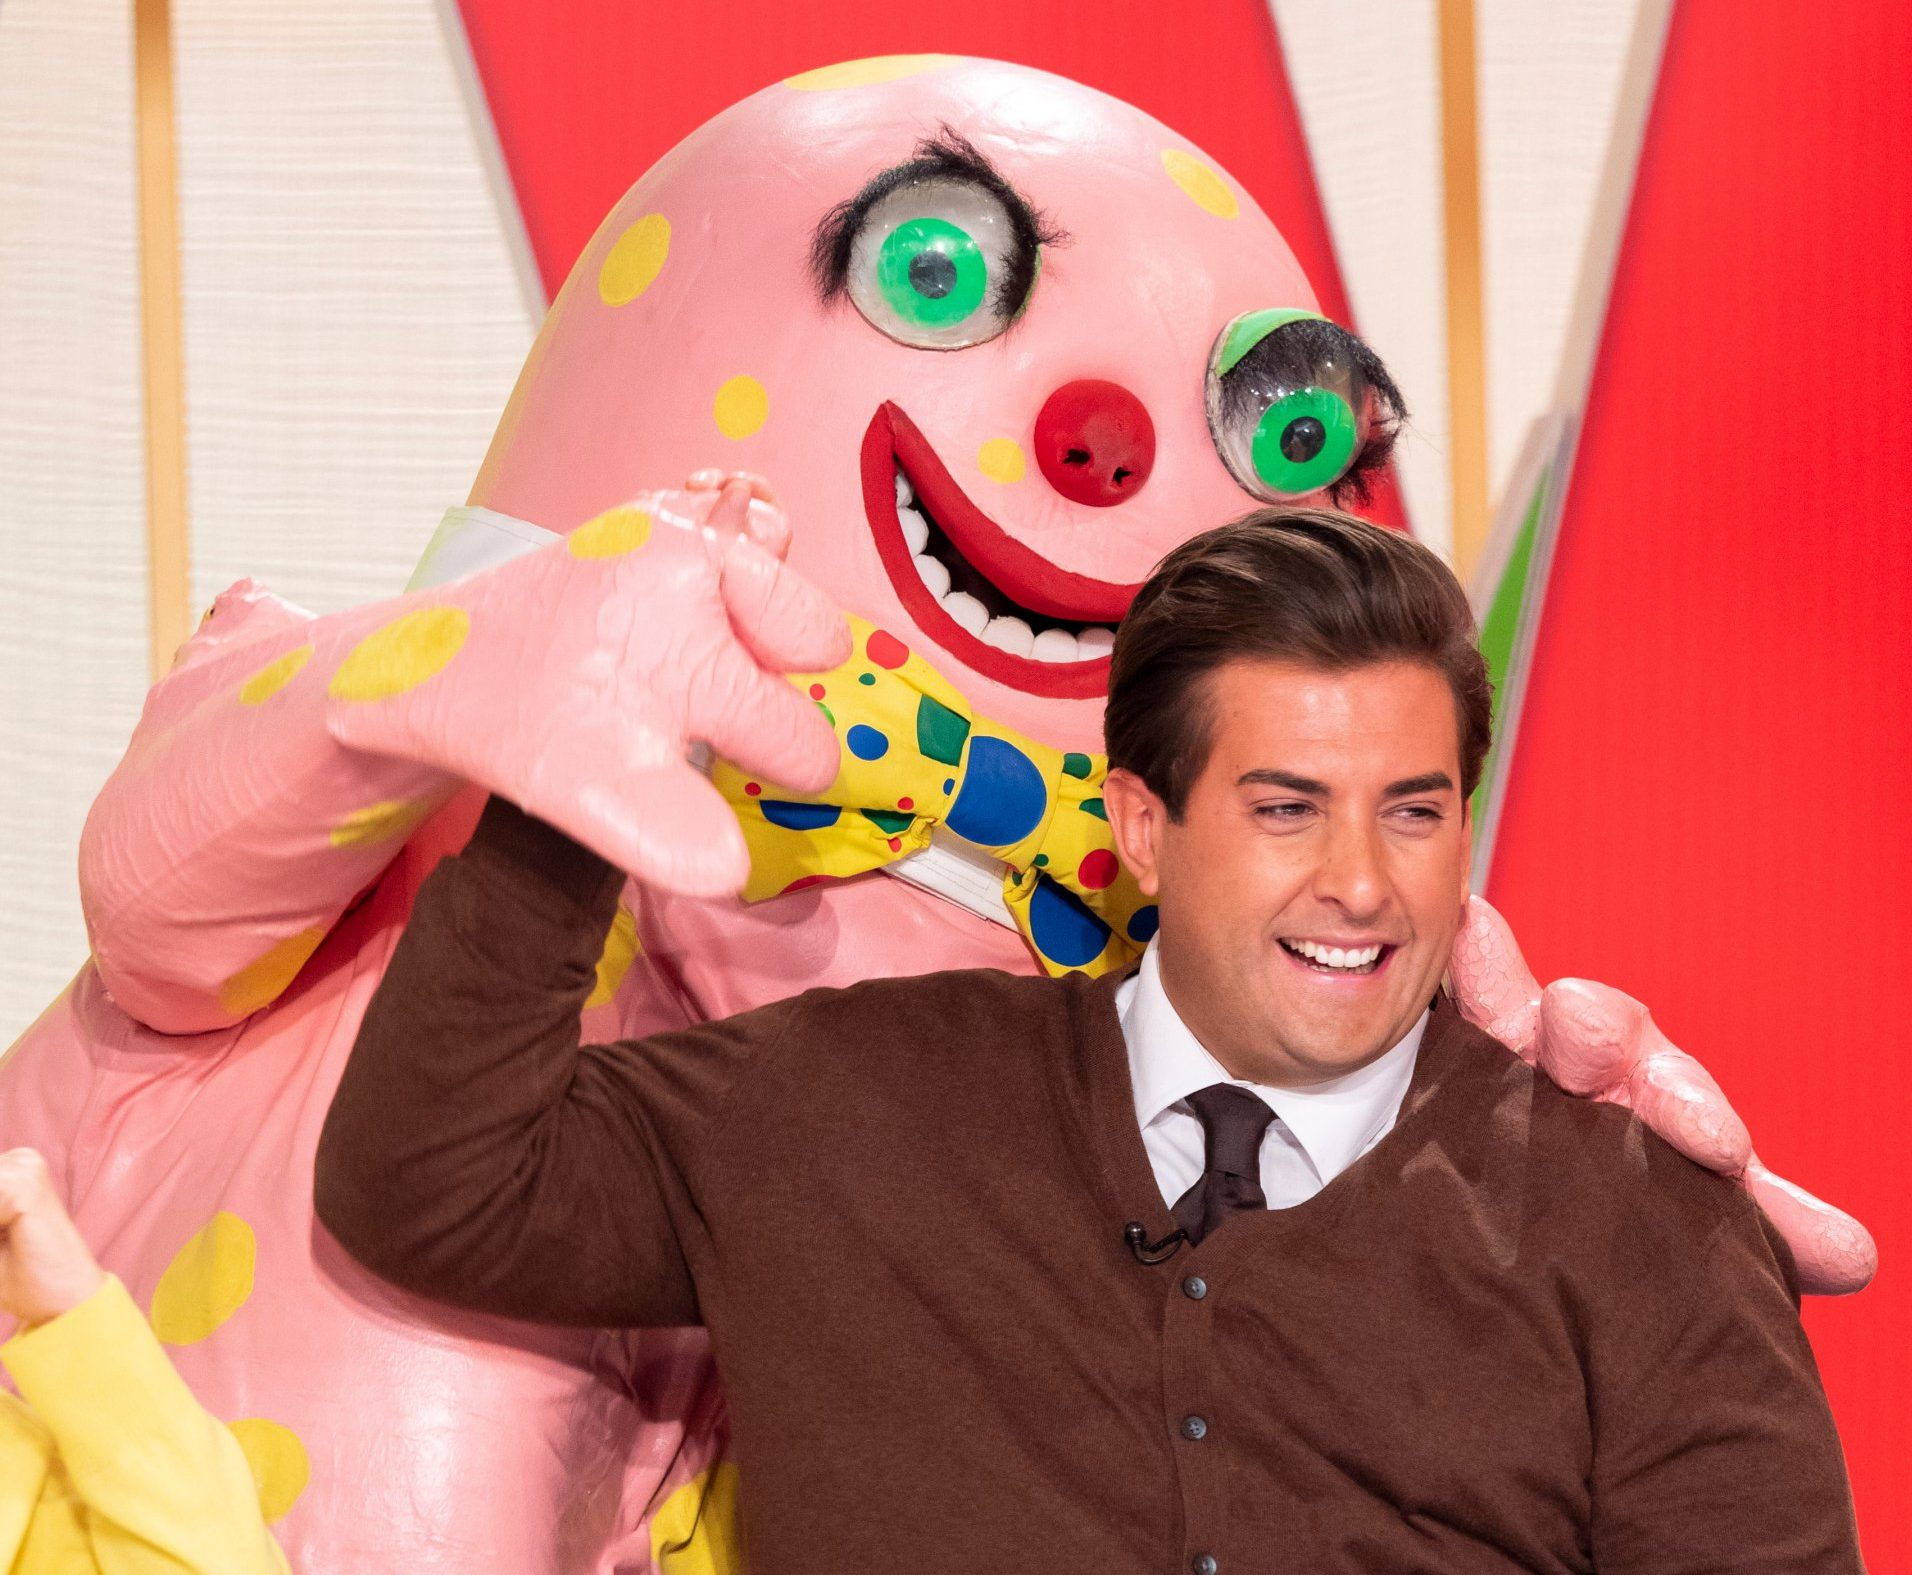 James Argent appears on Loose Women after girlfriend Gemma Collins slams 'bland and boring' show